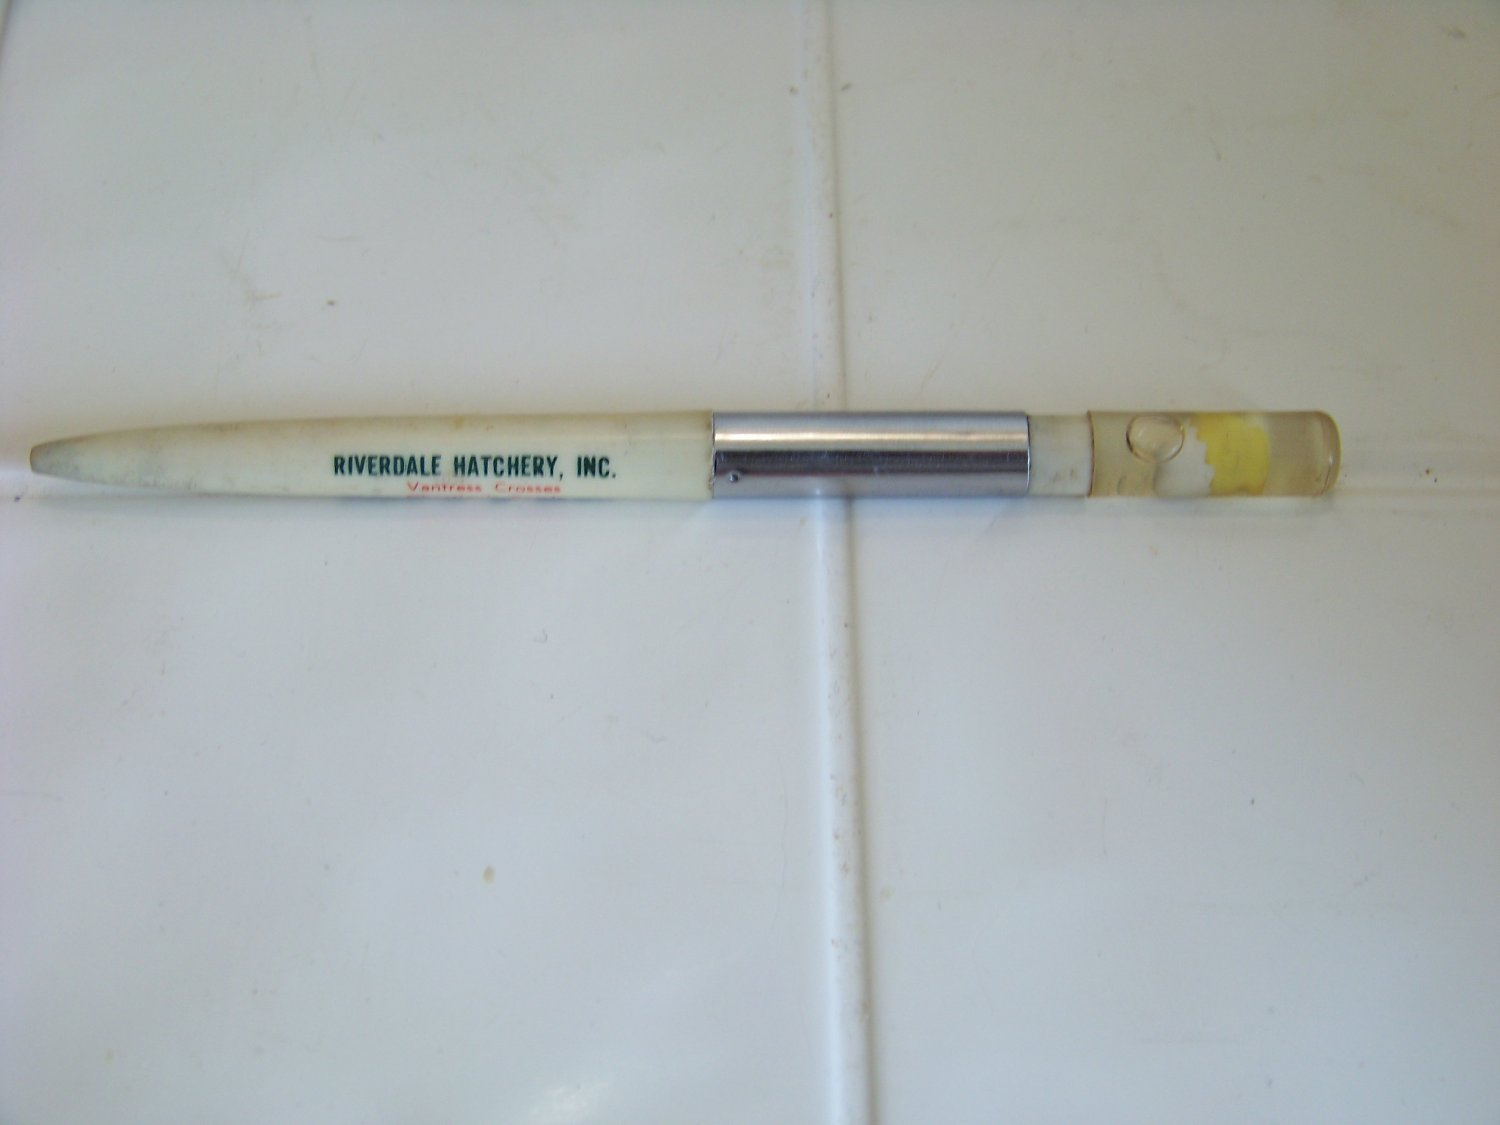 vintage advertising ritepoint pen Riverdale hatchery with chic and egg floating top